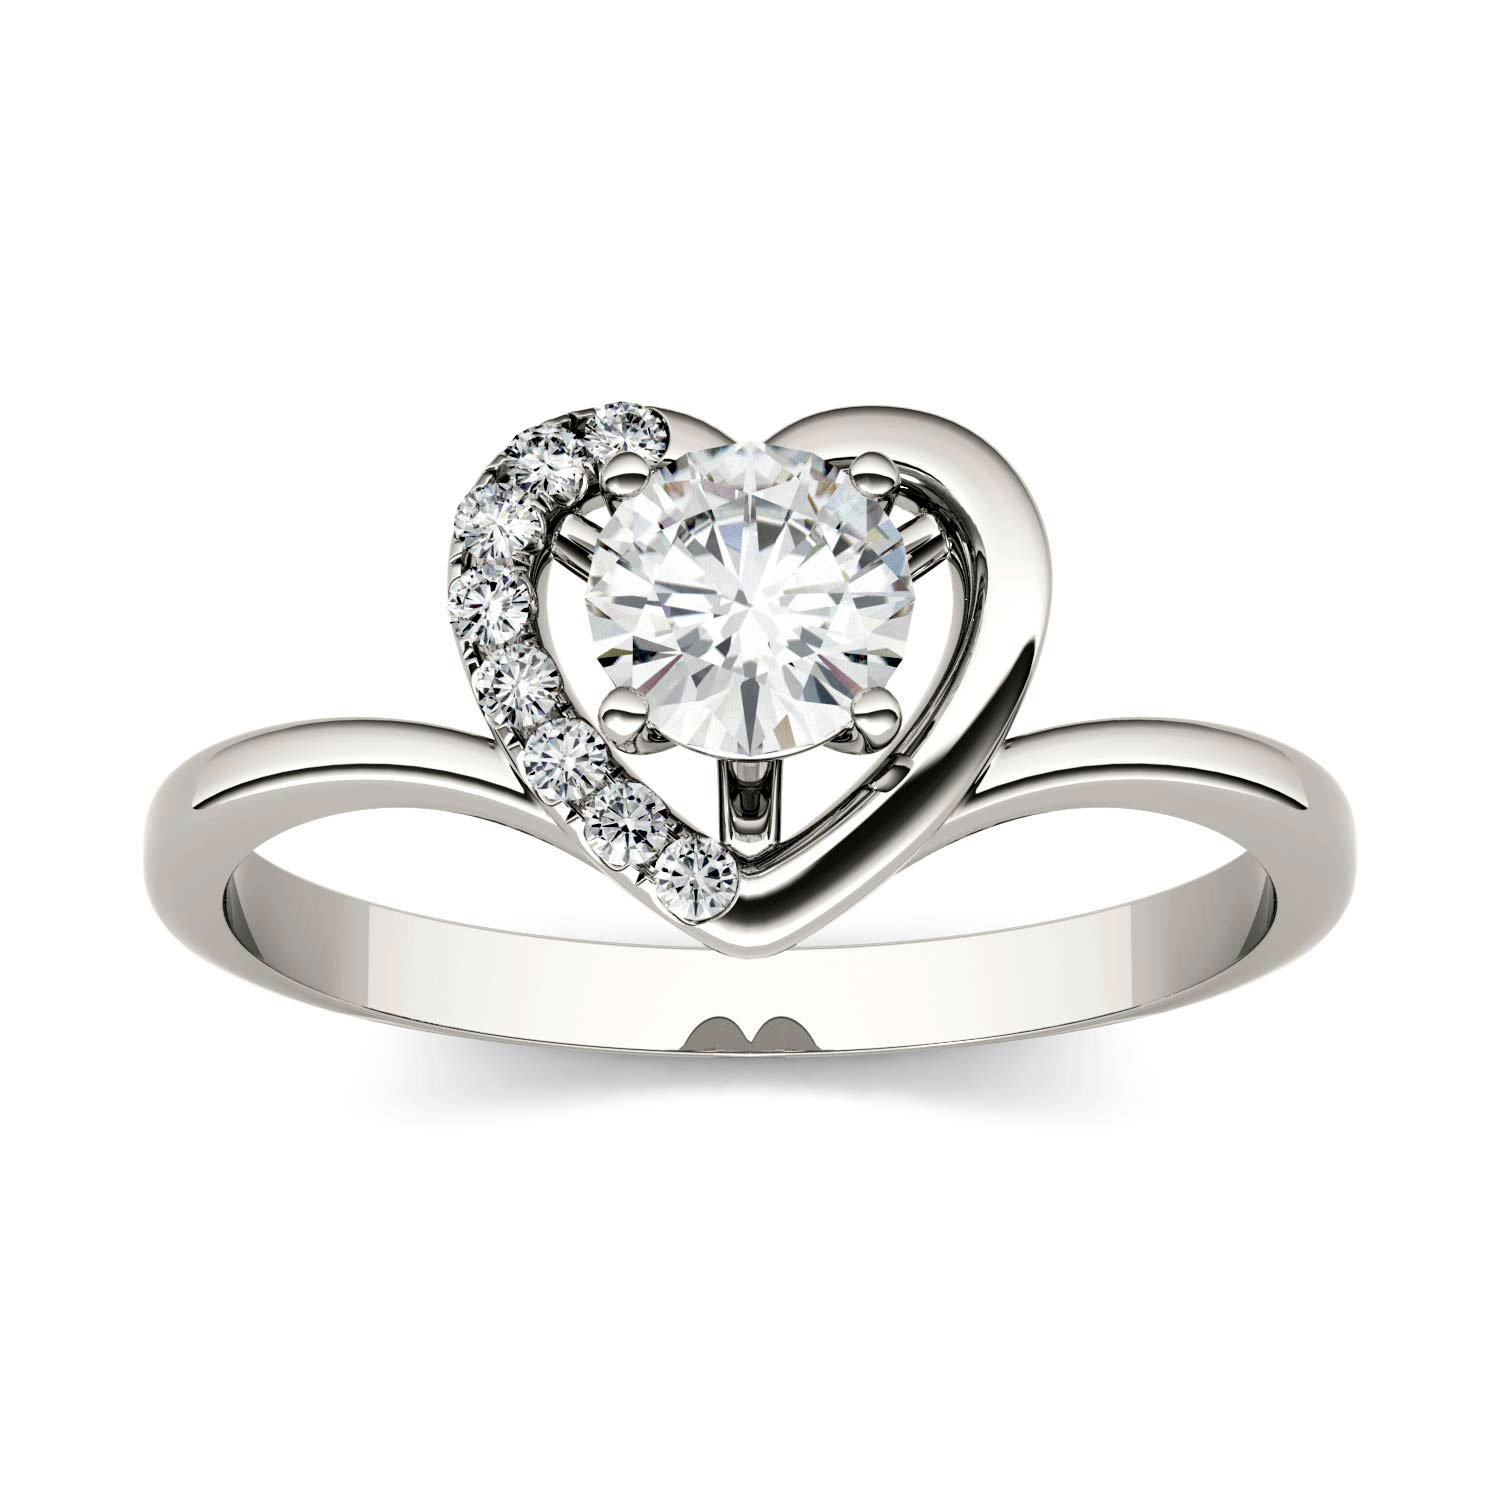 Forever Brilliant Round 5.0mm Moissanite Heart Ring-size 7, 0.58cttw DEW By Charles & Colvard